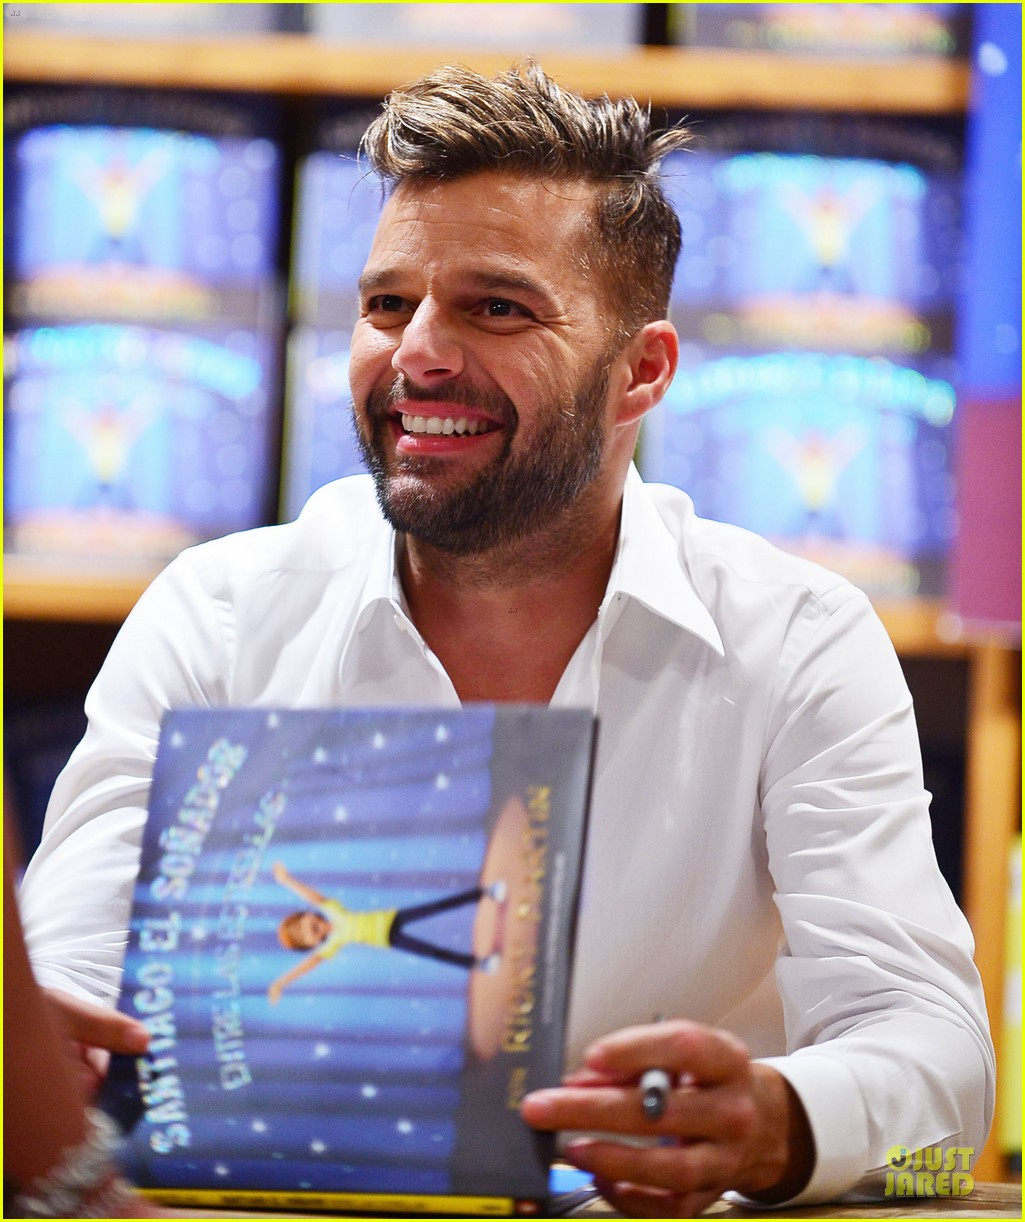 Ricky Martin Flashes Chest Hair For Santiago Signing Photo